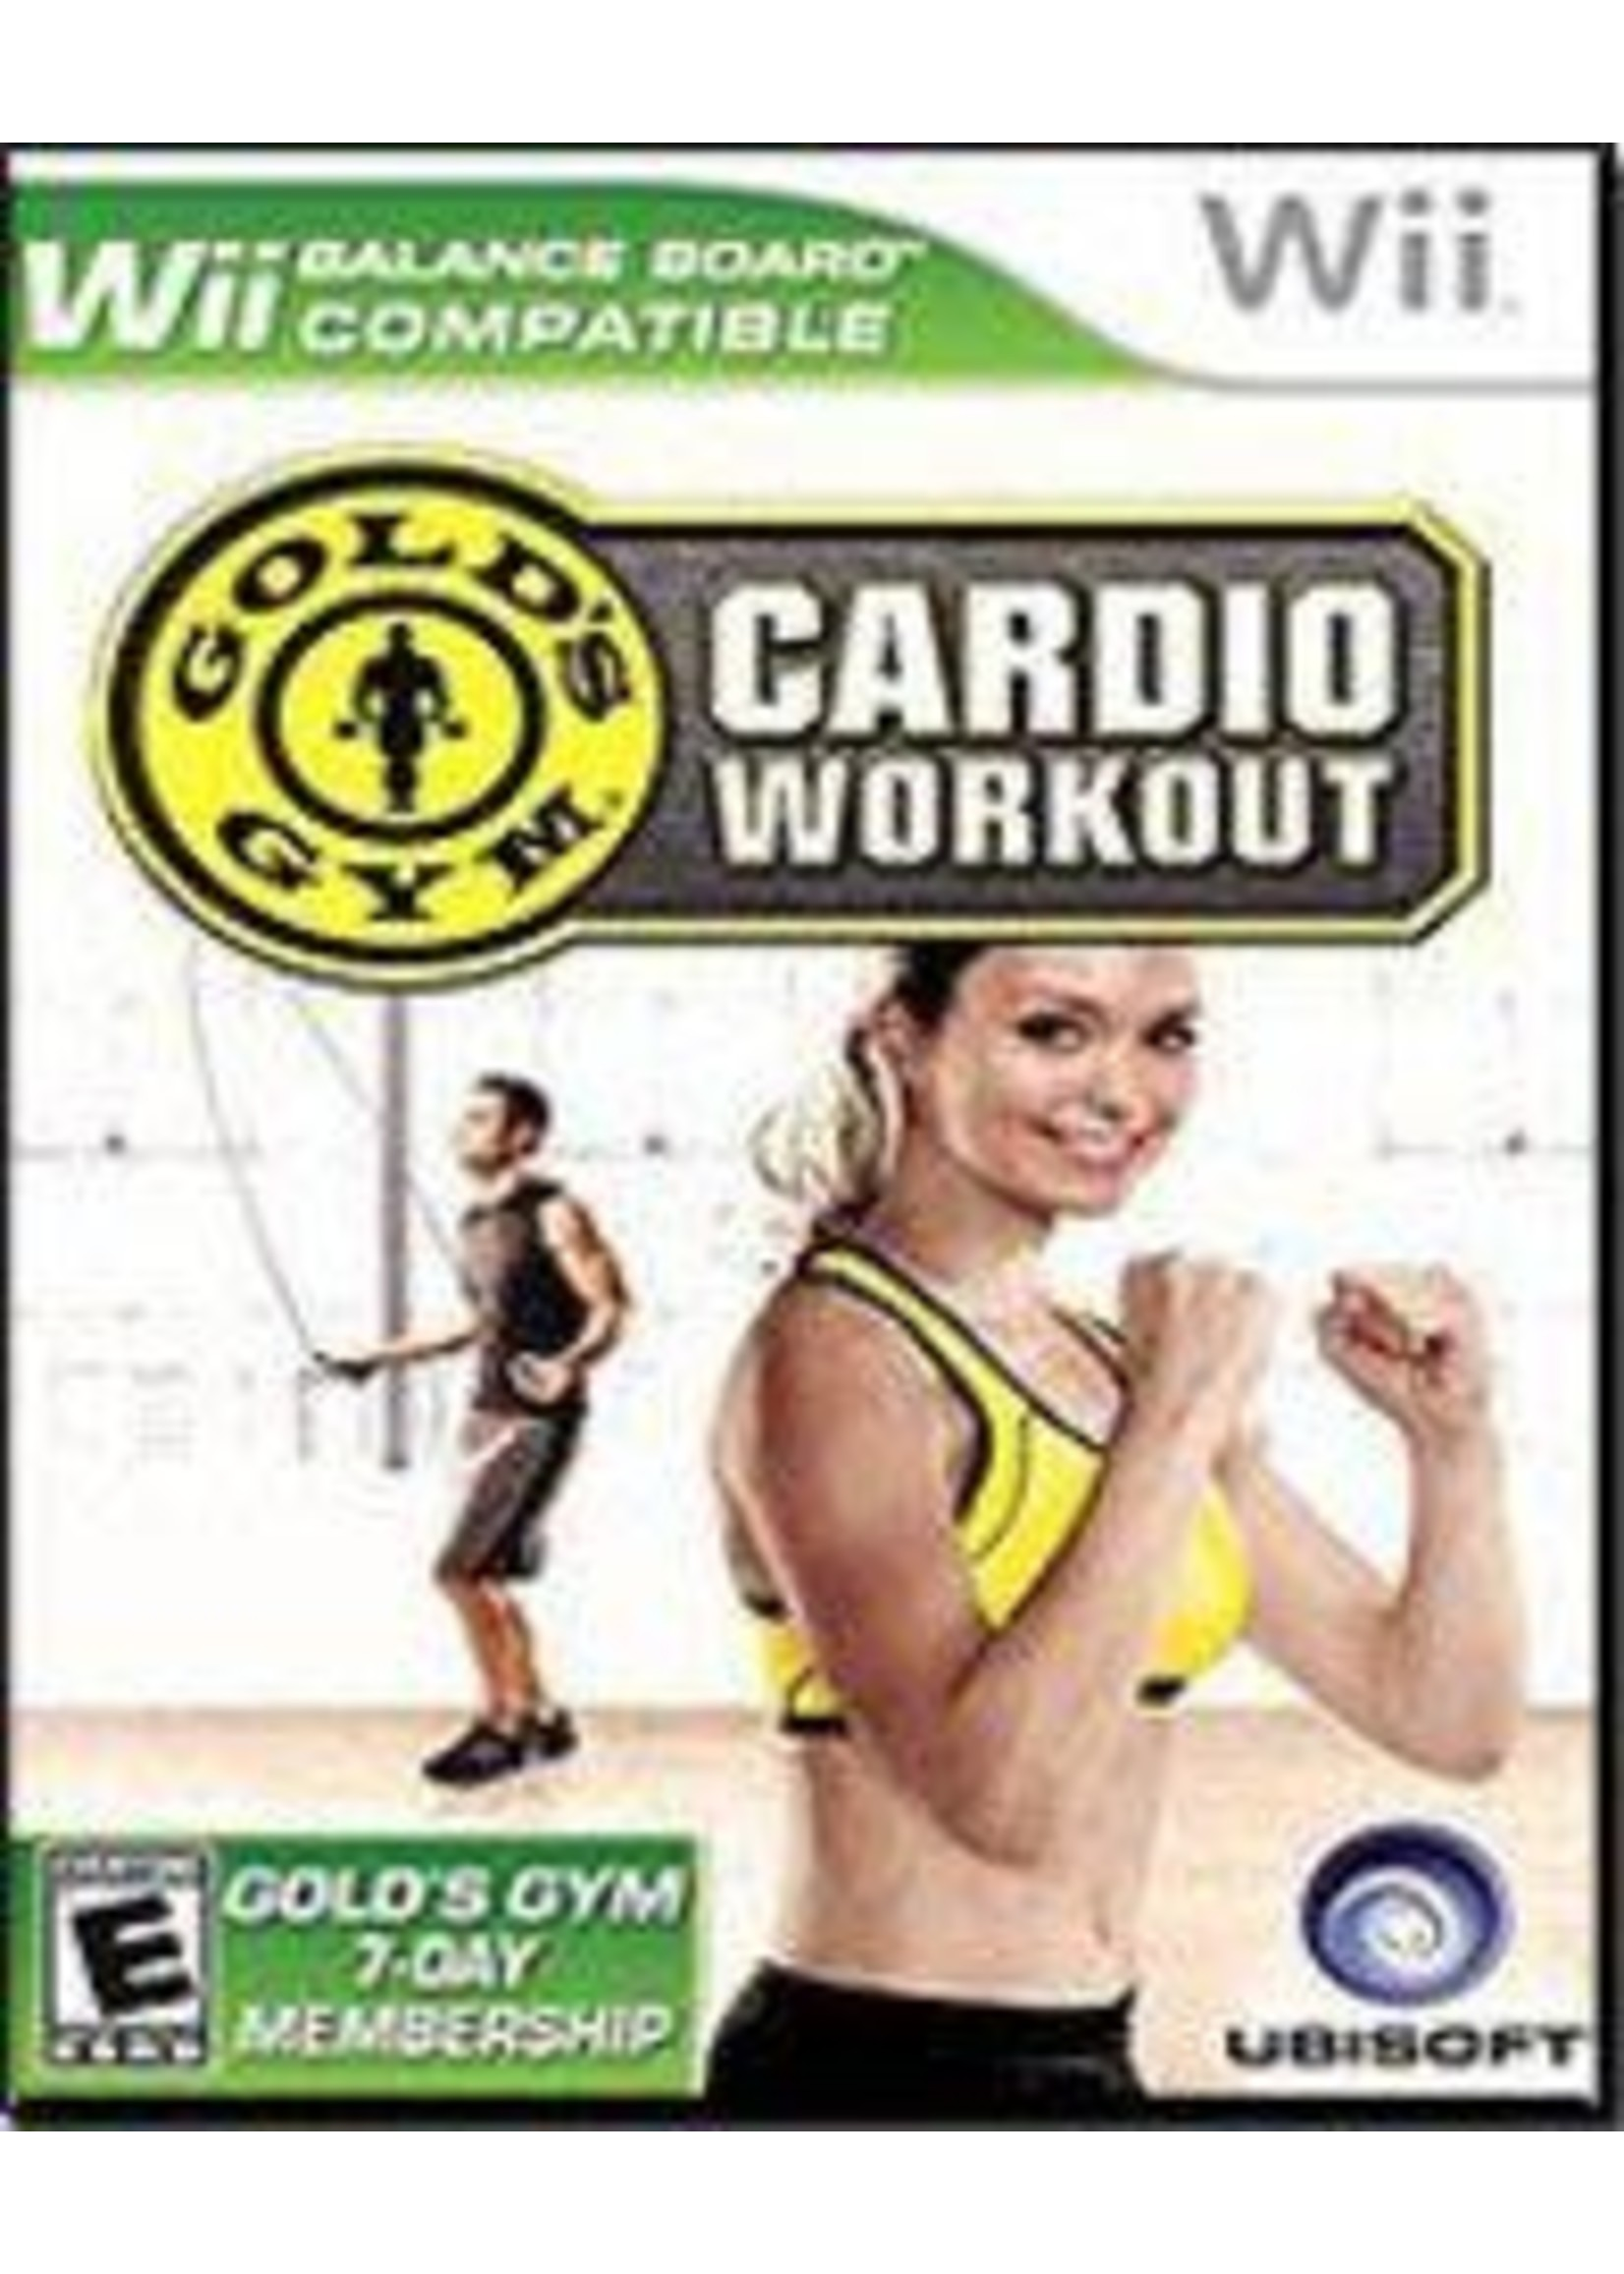 Gold's Gym Cardio Workout Wii